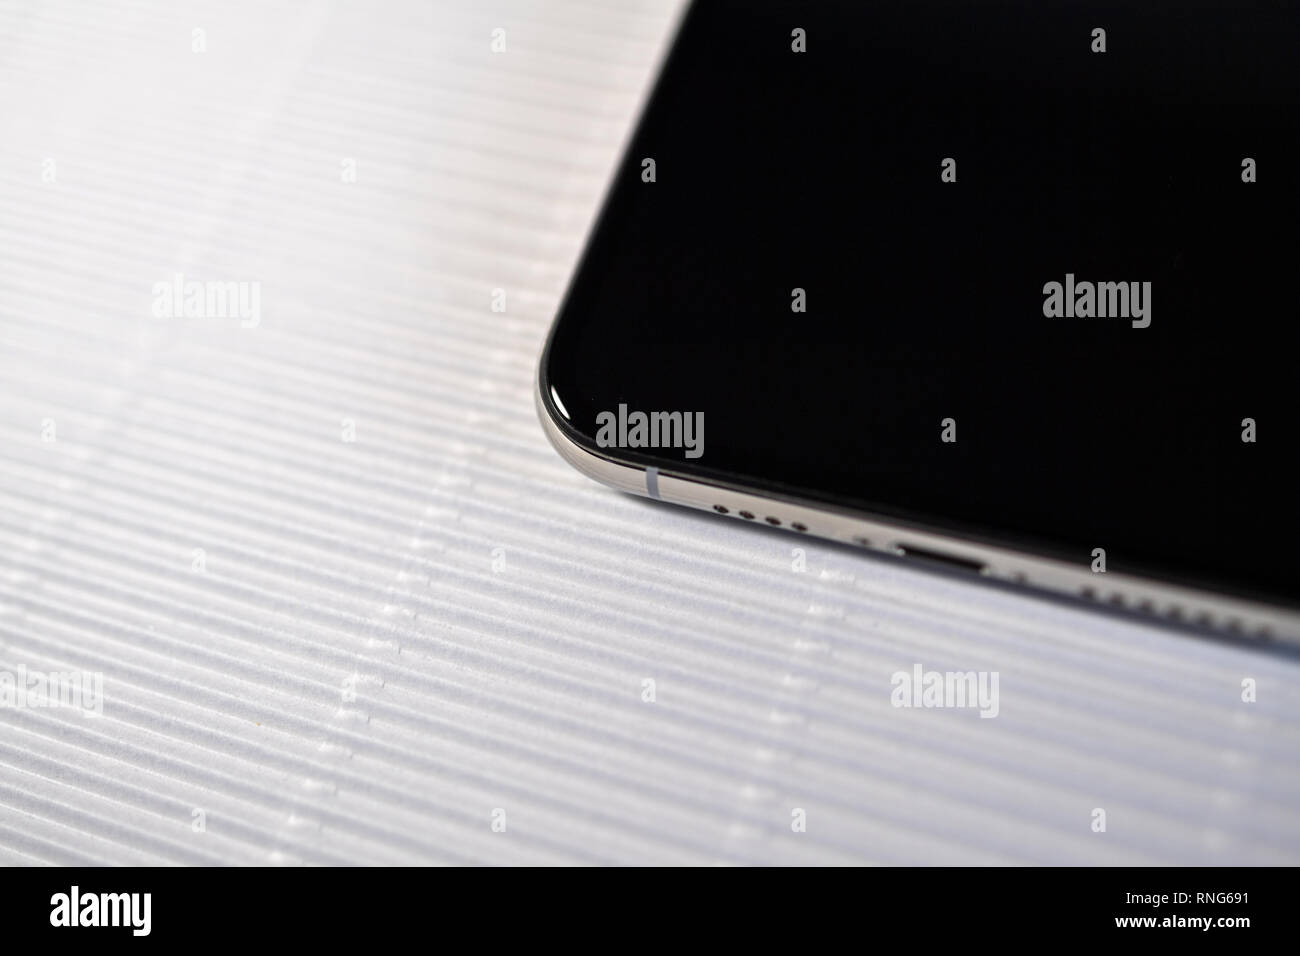 PARIS, FRANCE - SEP 27, 2018: new iPhone Xs Max smartphone model by Apple Computers close up with black display screen  Stock Photo